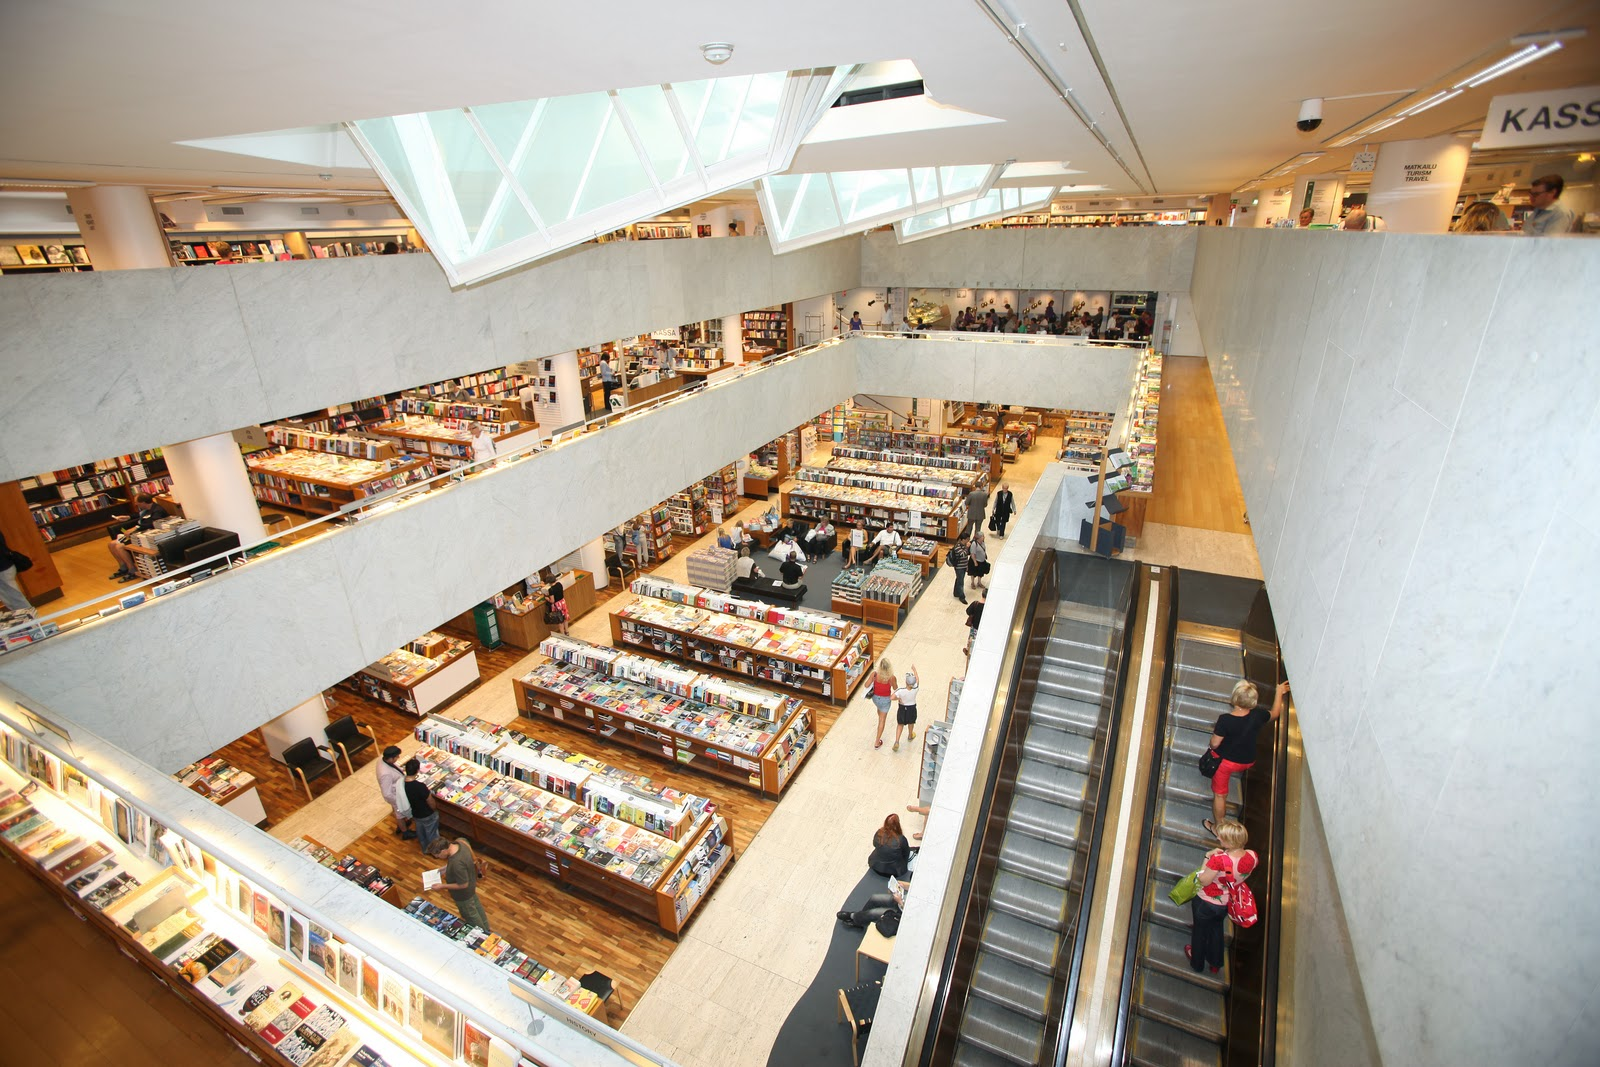 The Academic Bookstore, Helsinki: showcasing Scandinavian architecture